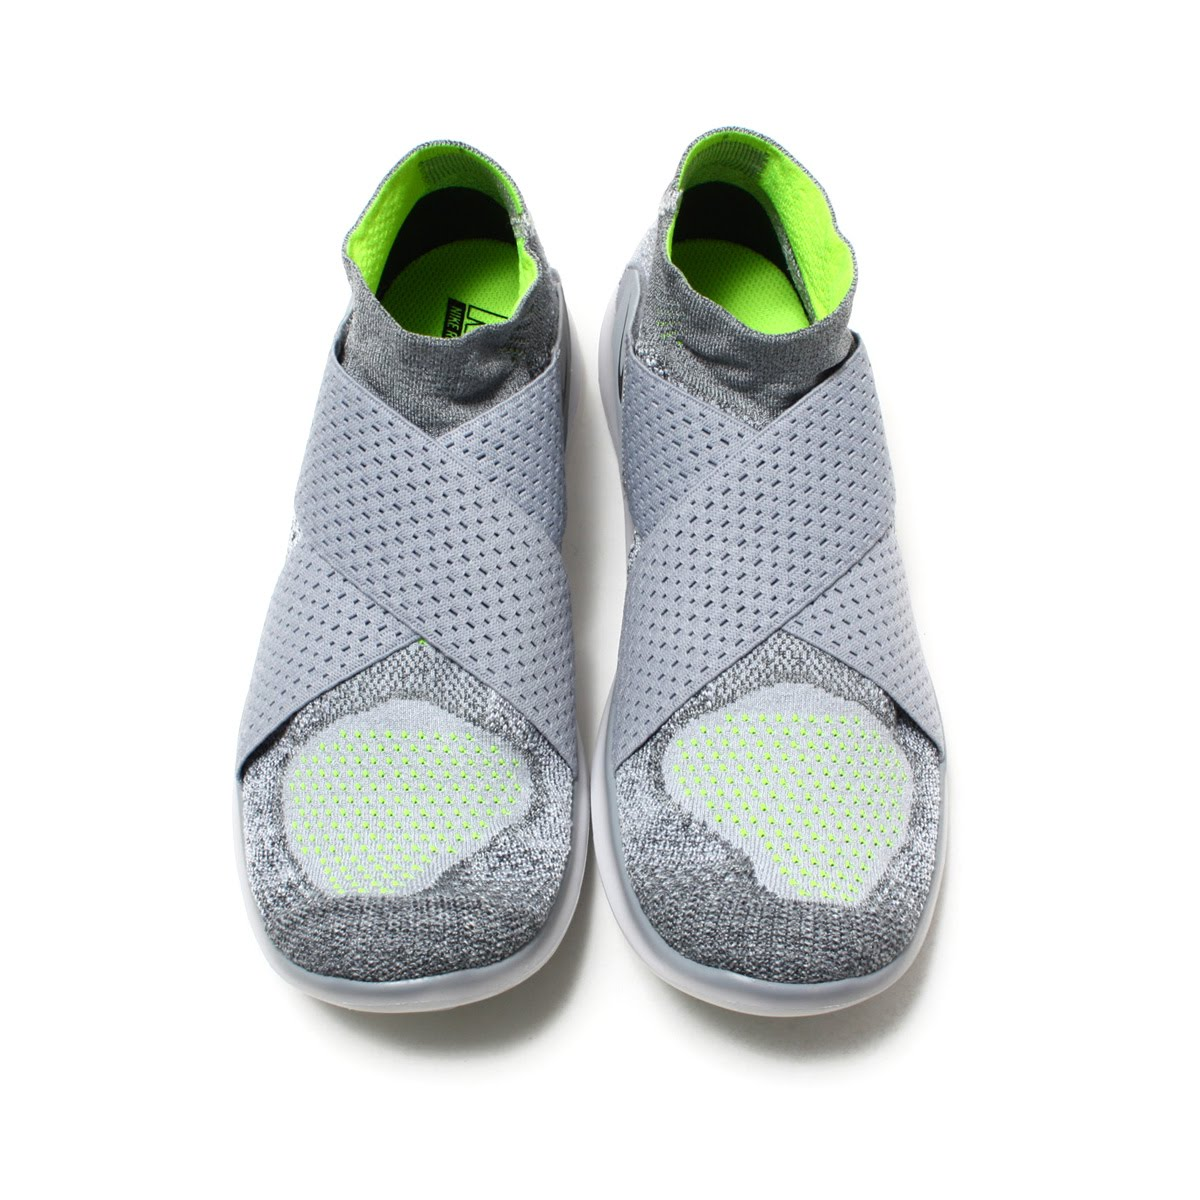 6edab8078d59 ... WOLF GREY BLACK-COOL GREY-VOLT 18SP-I NIKE FREE RN MOTION FK 2017 (Nike- free orchid motion fly knit 2017)